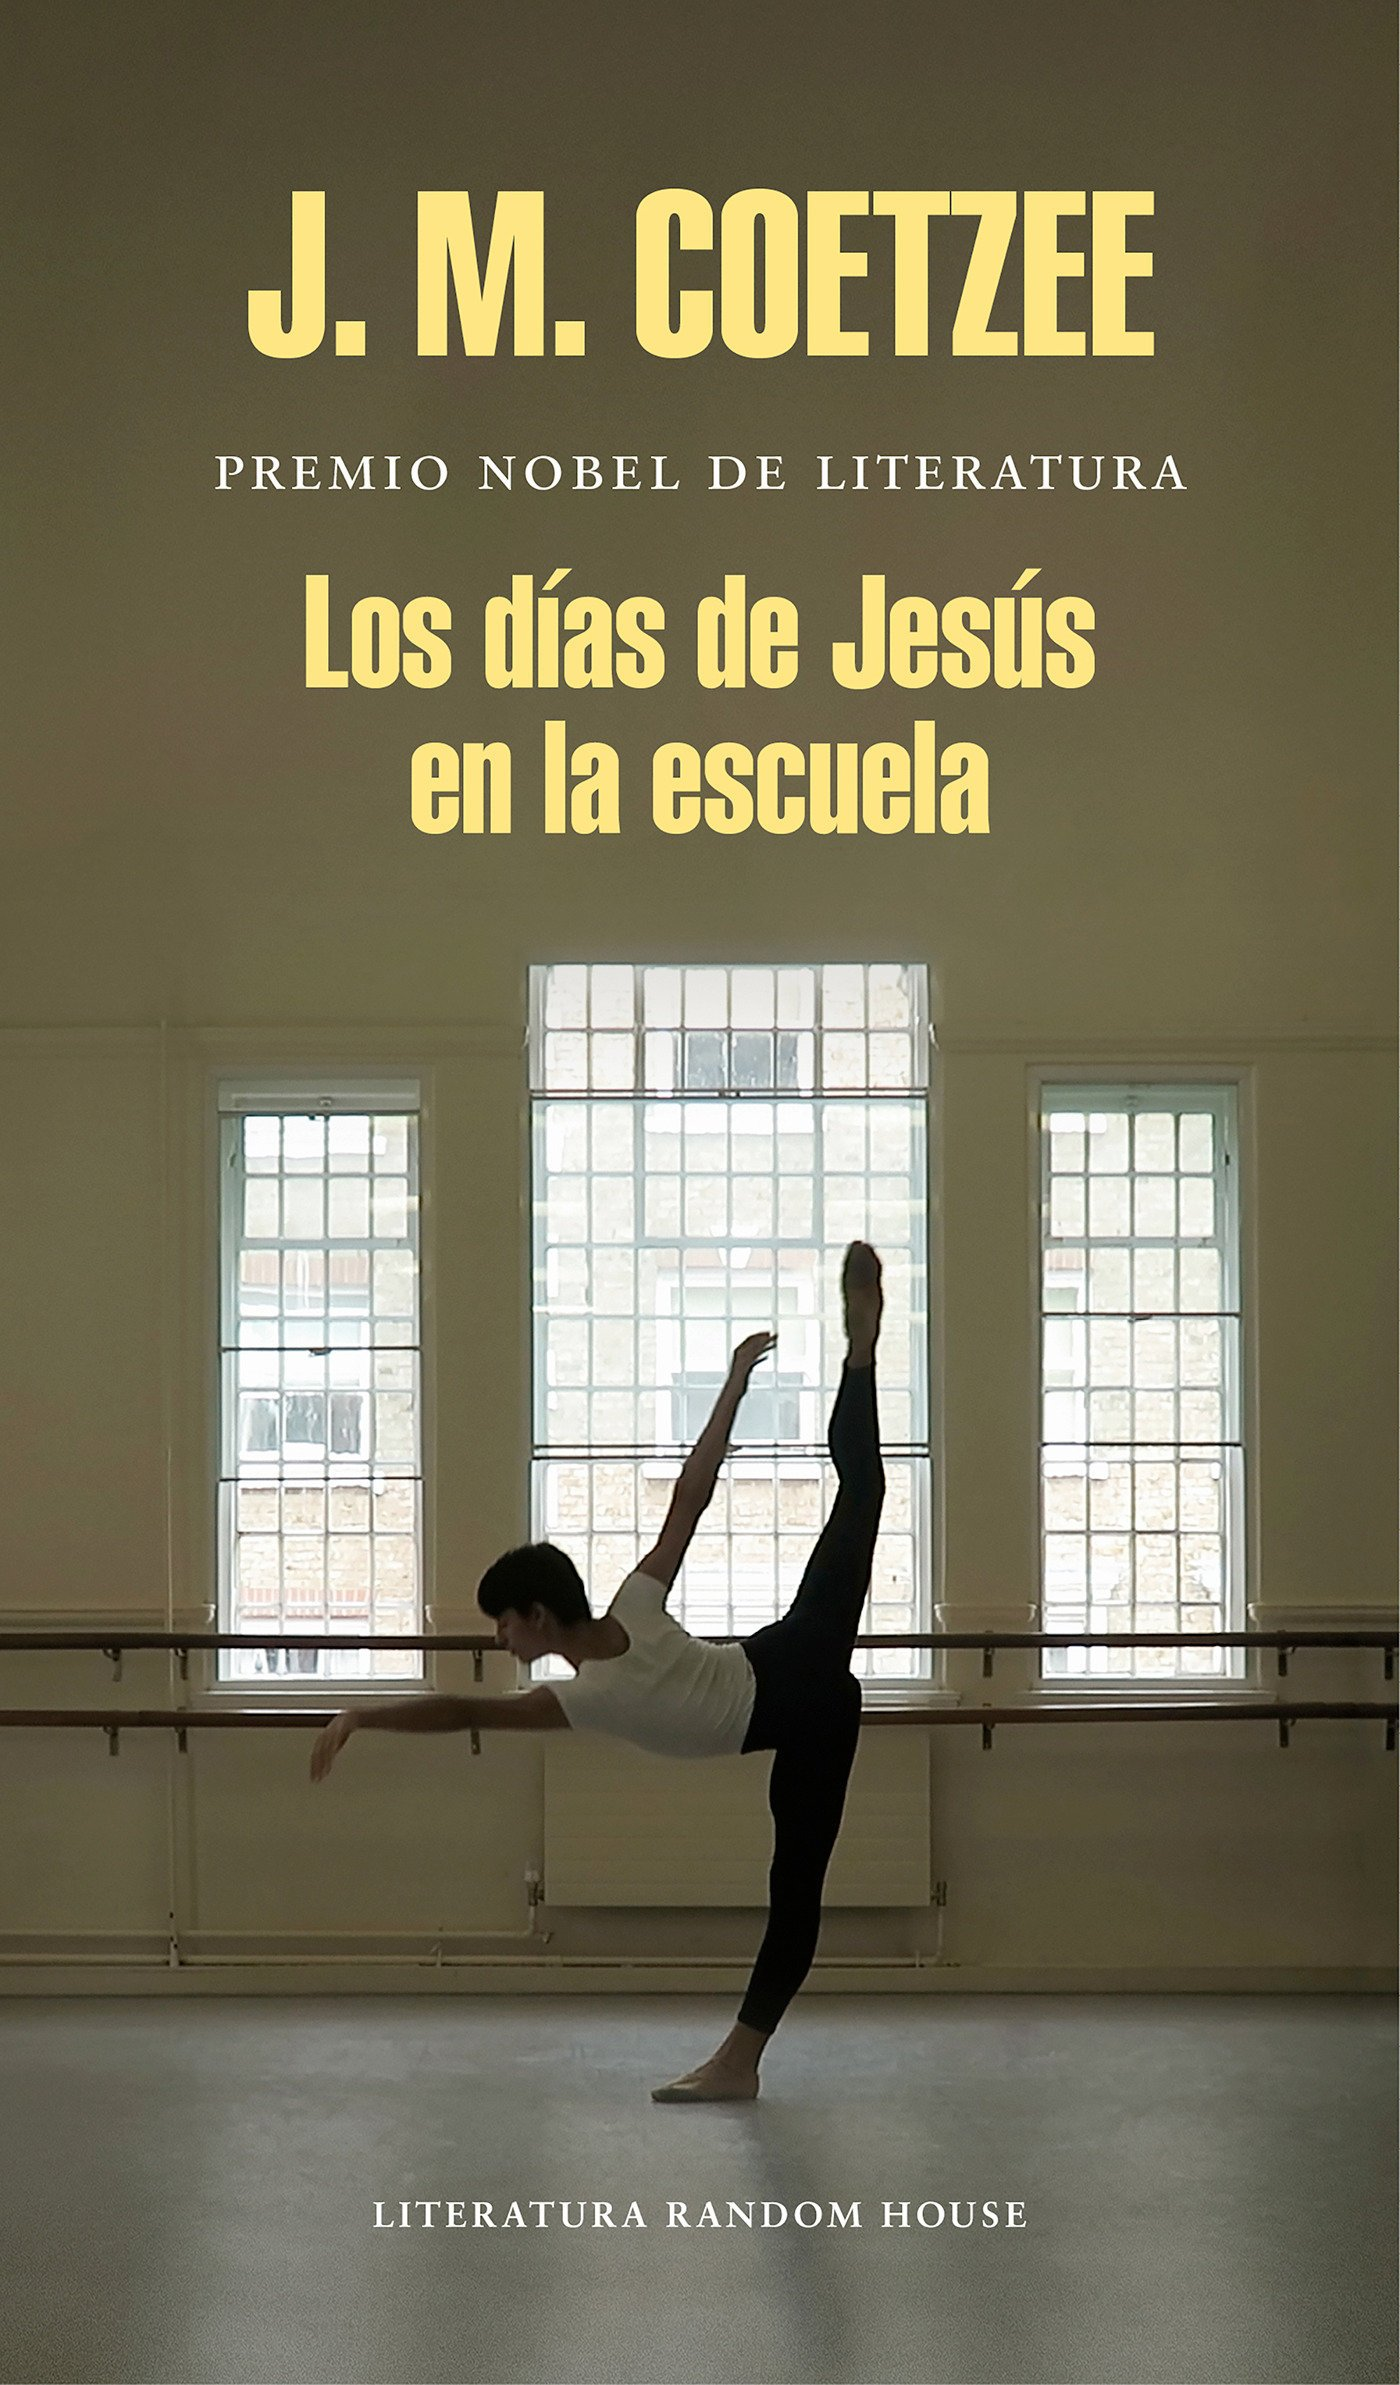 Los días de Jesús en la escuela / The Schooldays of Jesus (Spanish Edition): J.M. Coetzee: 9788439732433: Amazon.com: Books